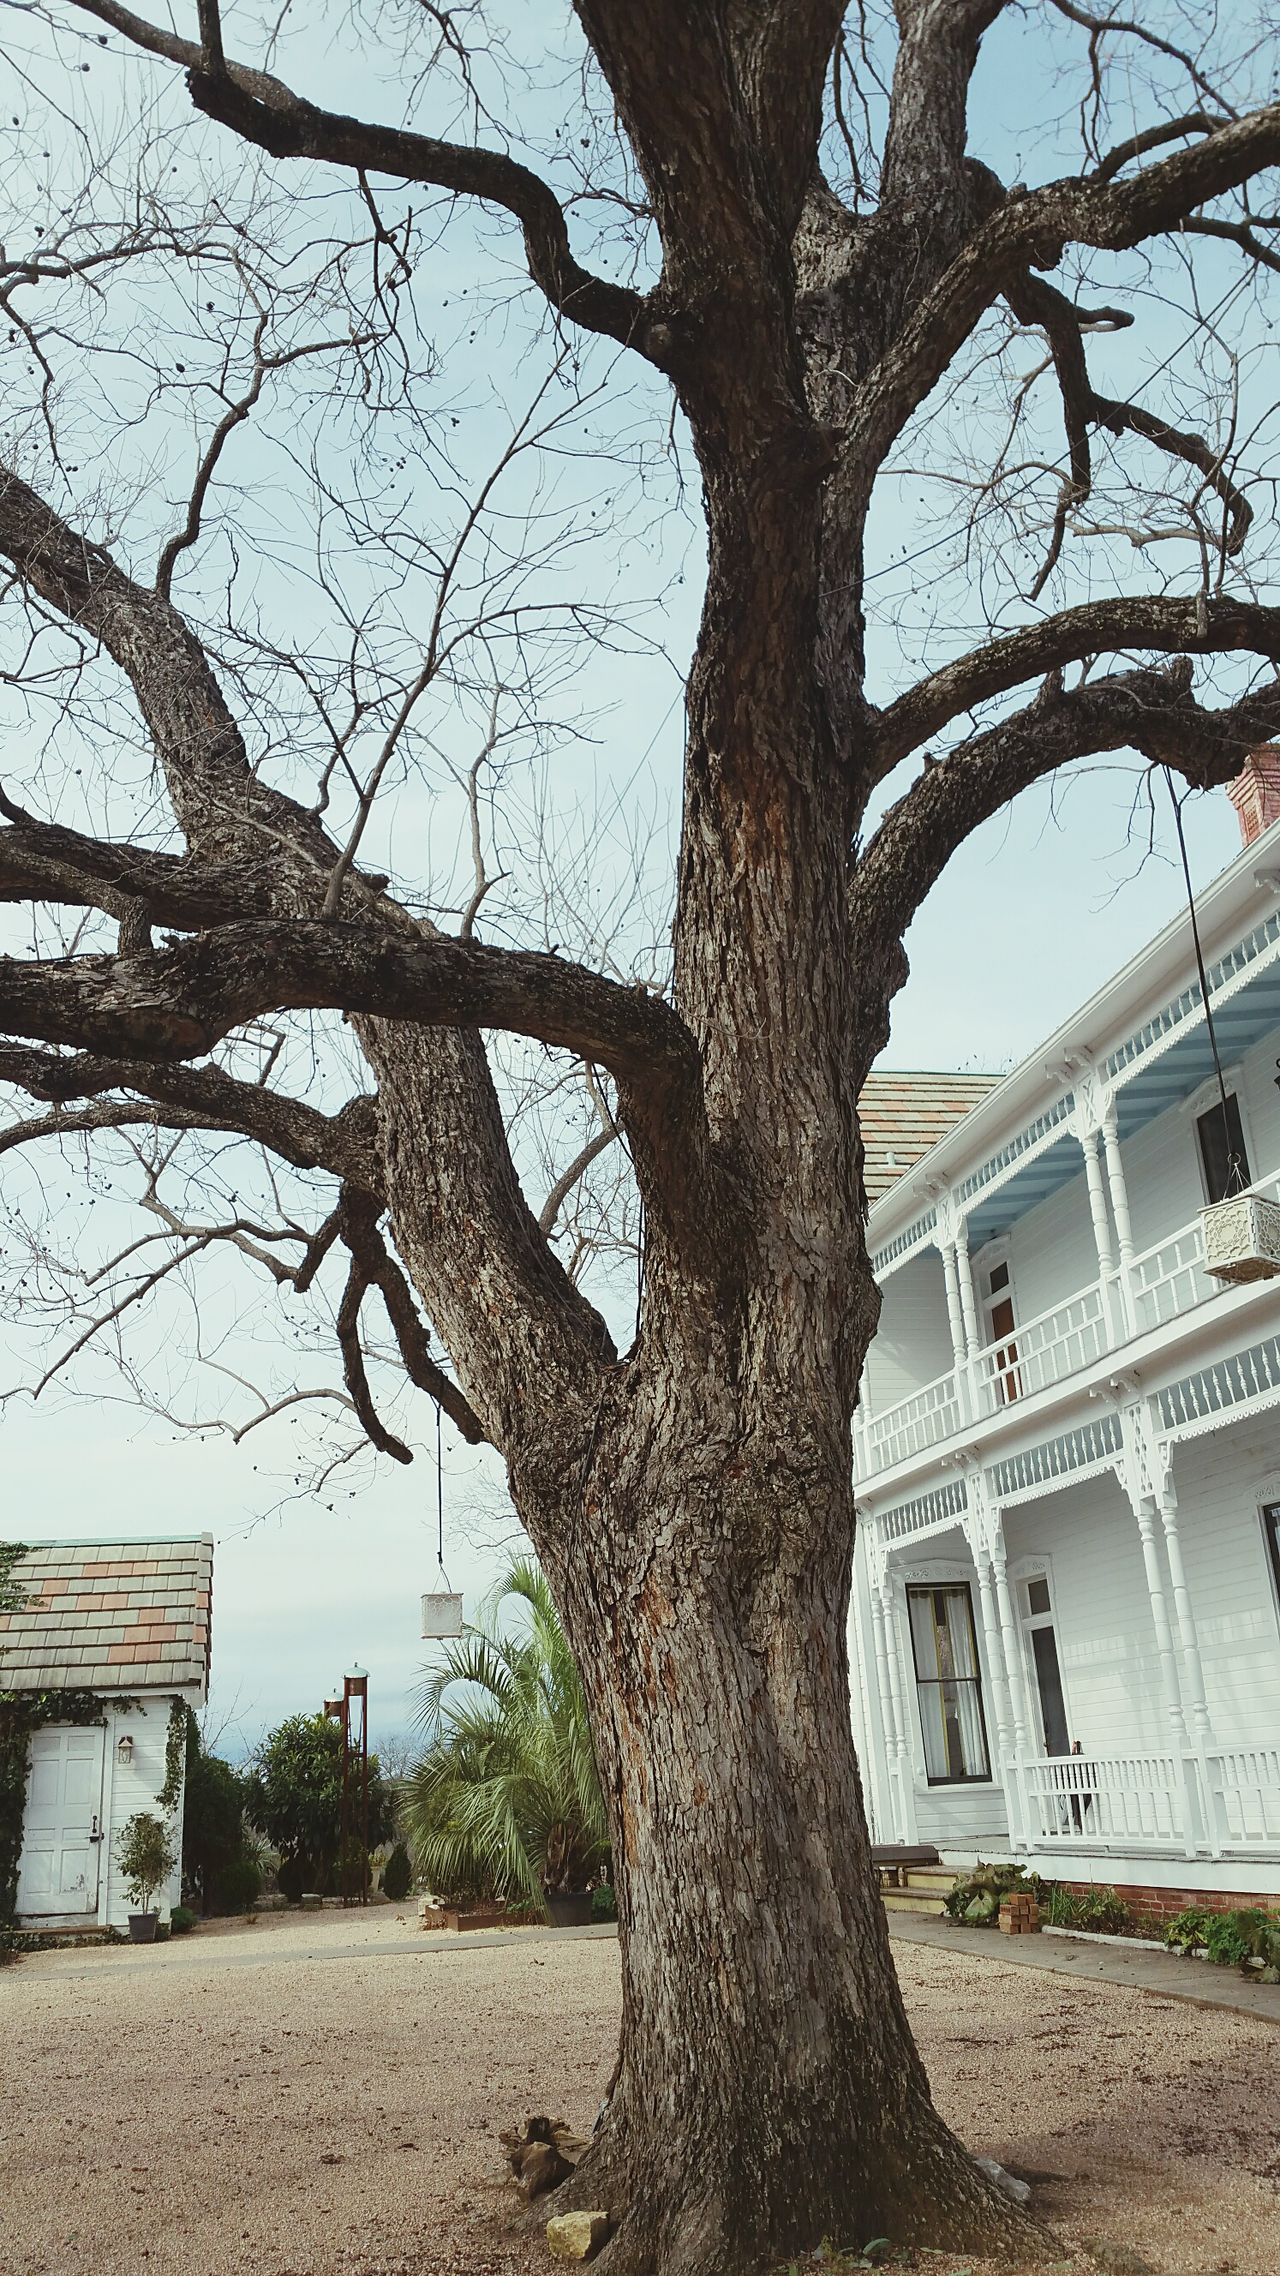 No telling how old this big old pecan tree is. Tree Sky Growth Branch Outdoors Building Exterior No People Architecture Day Nature Historical Building Texas Barr Mansion Historical Built Structure